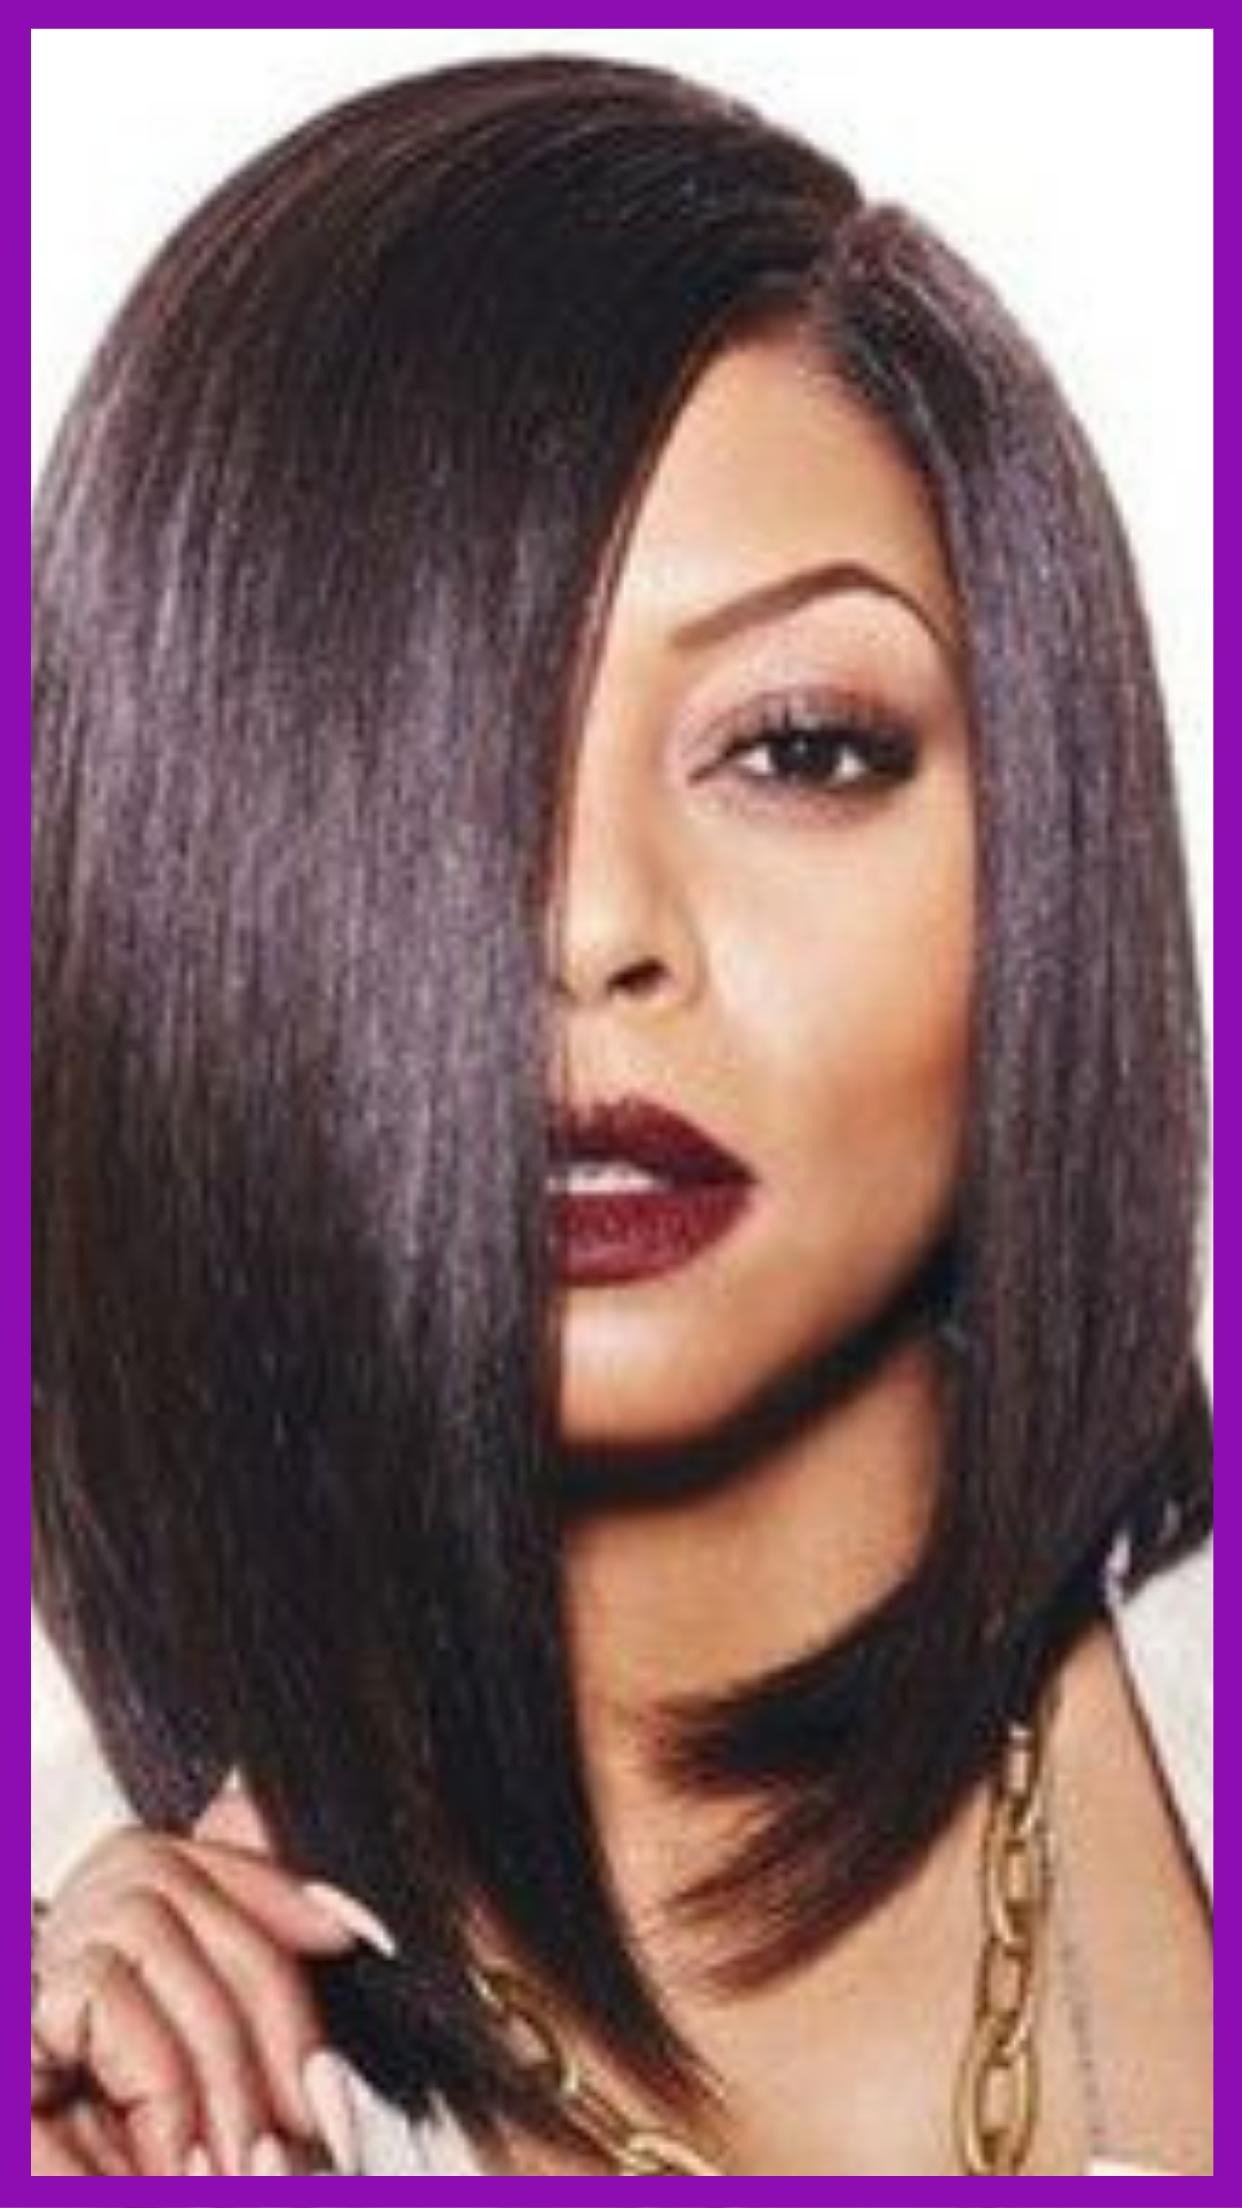 Bob Hairstyles for Black Women 15 Offline for Android   APK ...